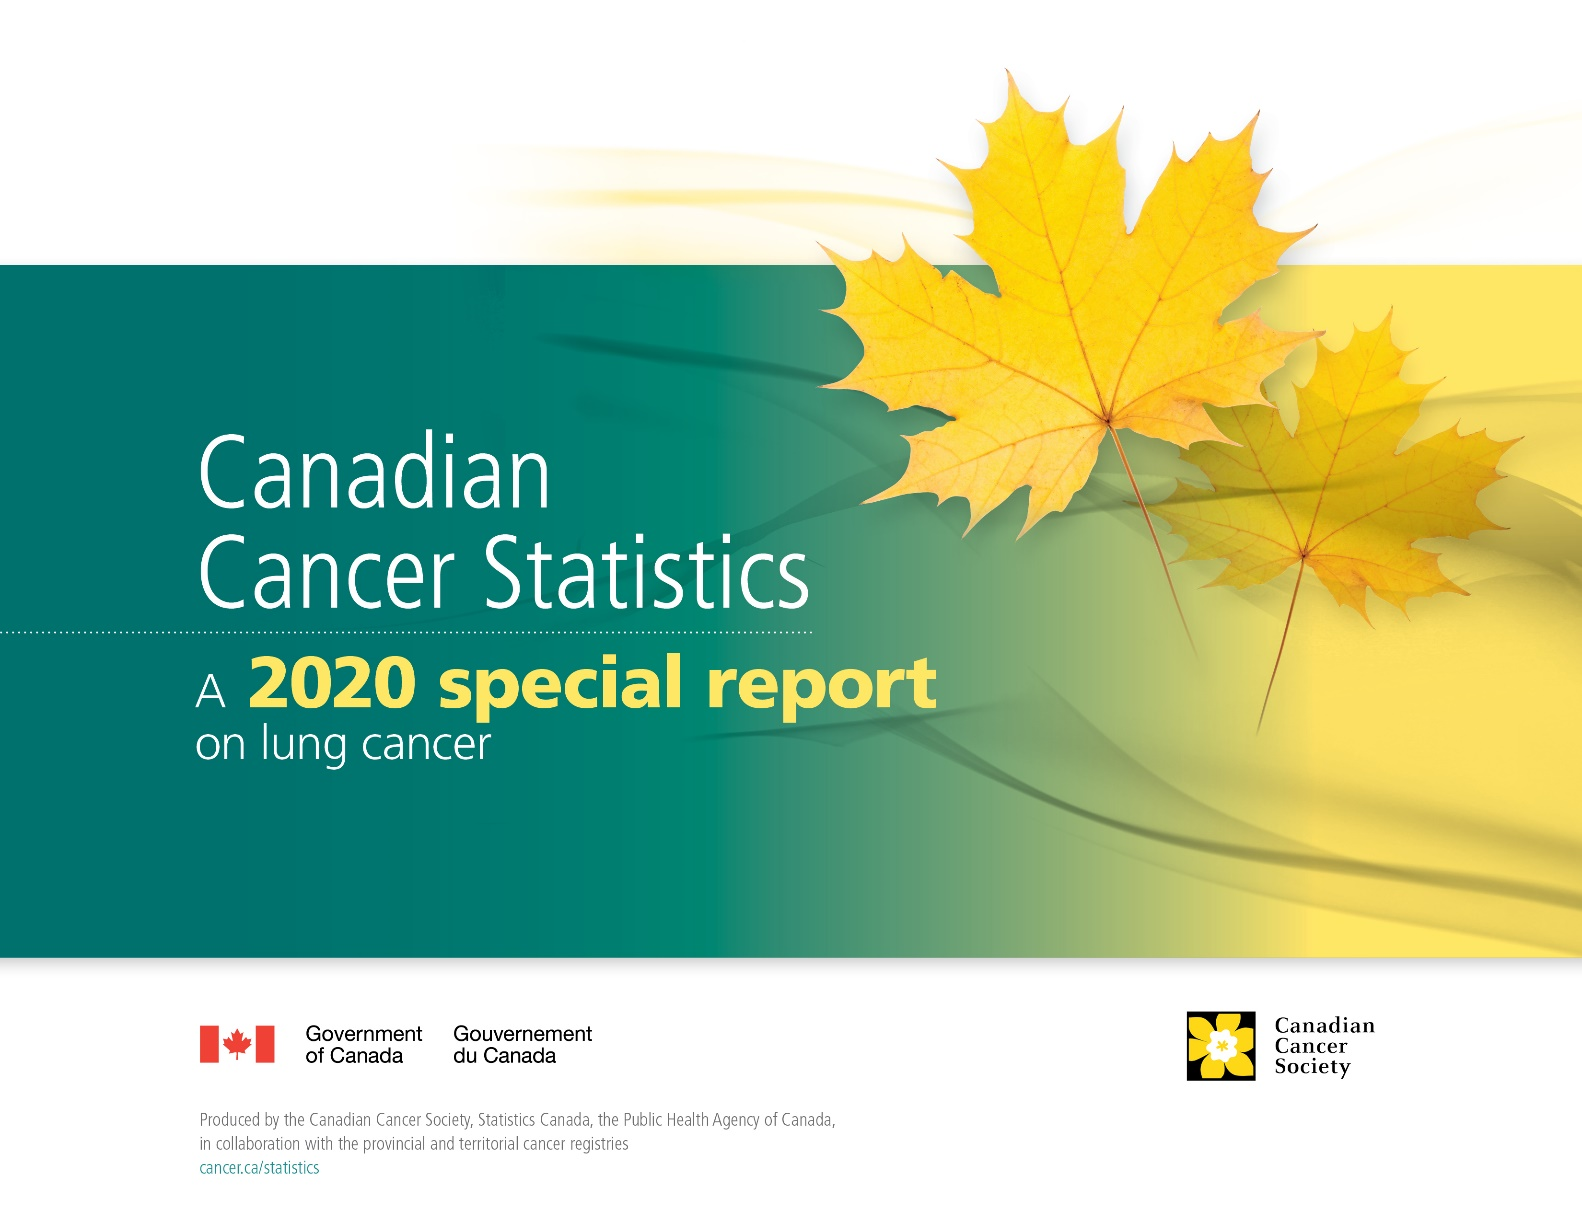 Canadian Cancer Statistics: A 2020 special report on lung cancer